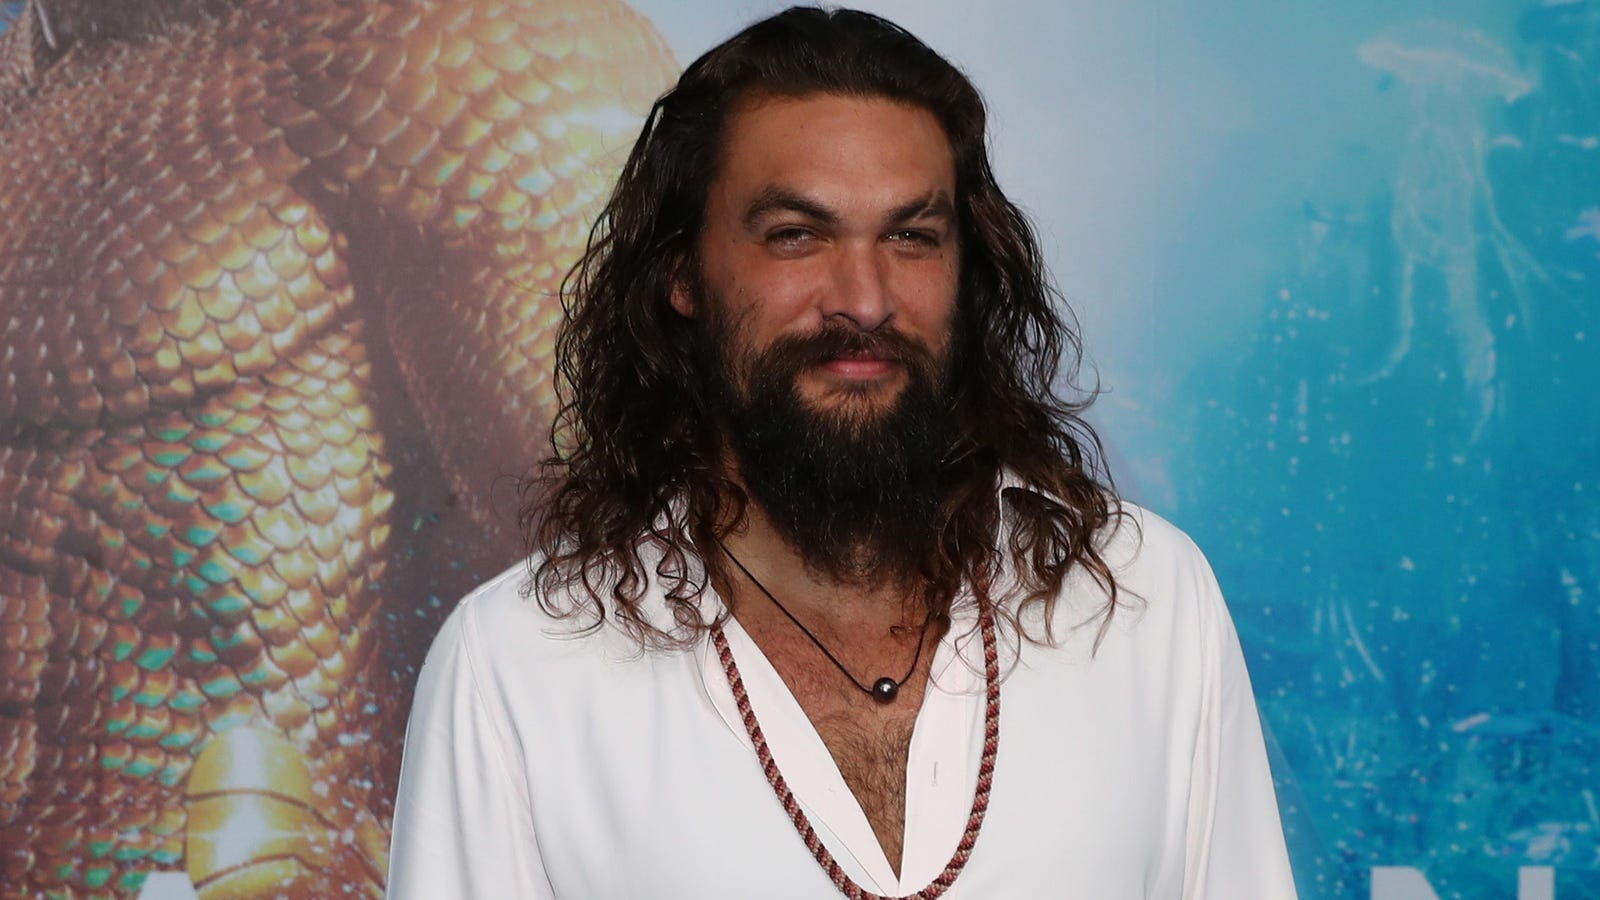 """Future marketing exec sells her Girl Scout cookies as """"Momoa Samoas"""""""